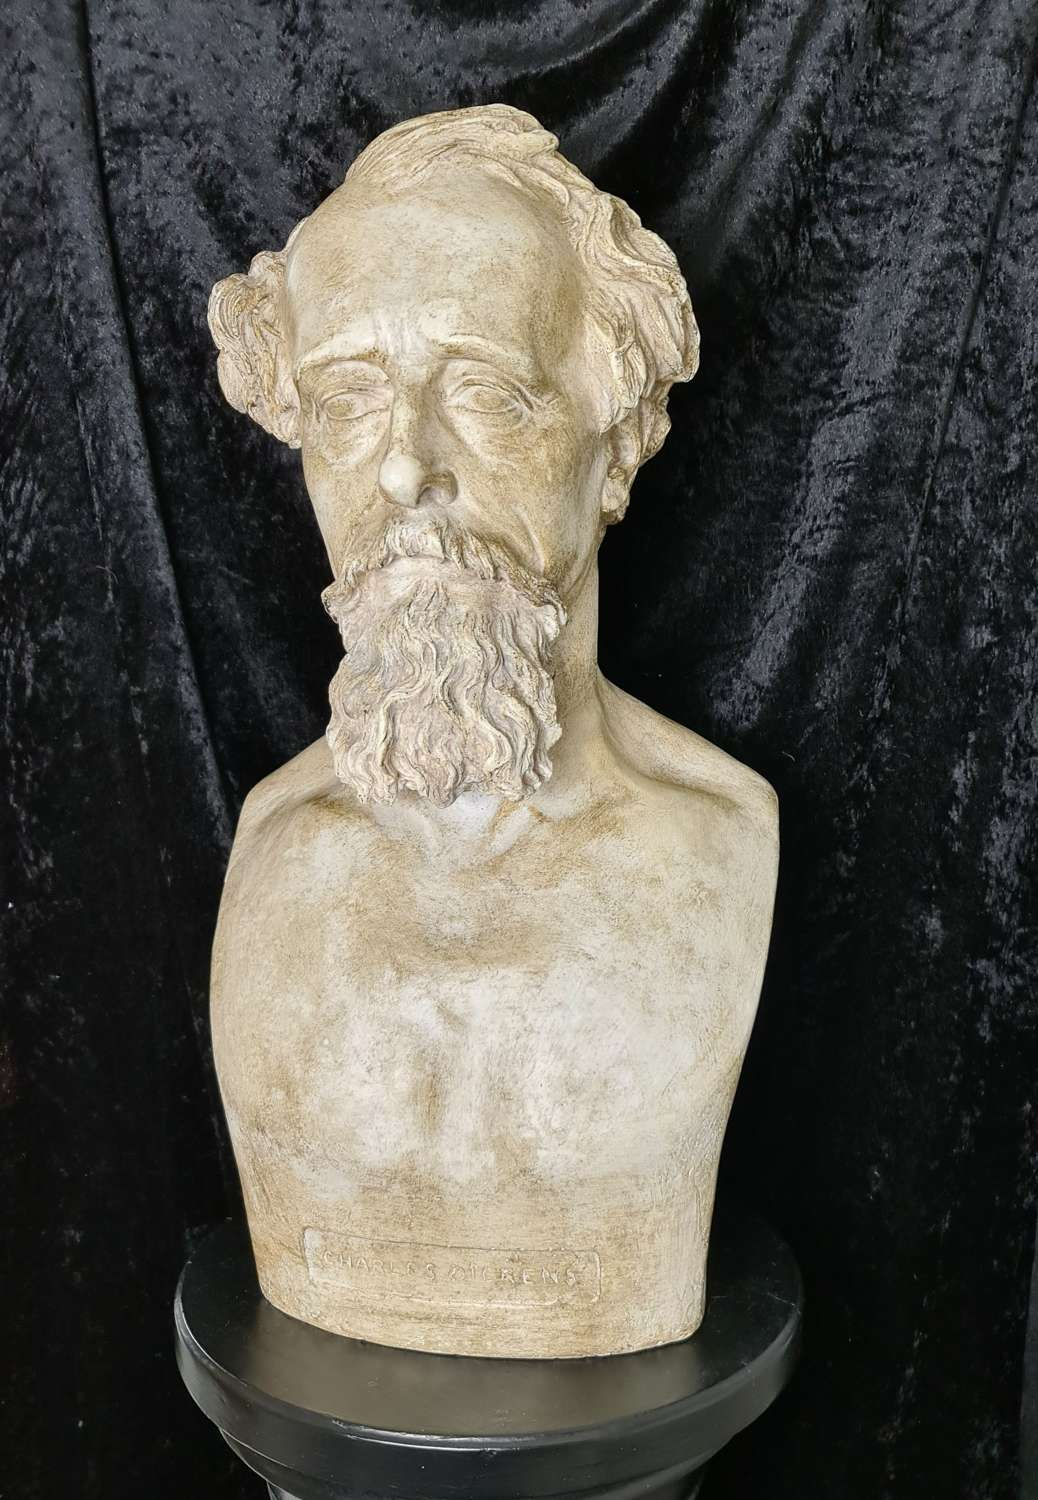 Handsome Bust of Writer Charles Dickens